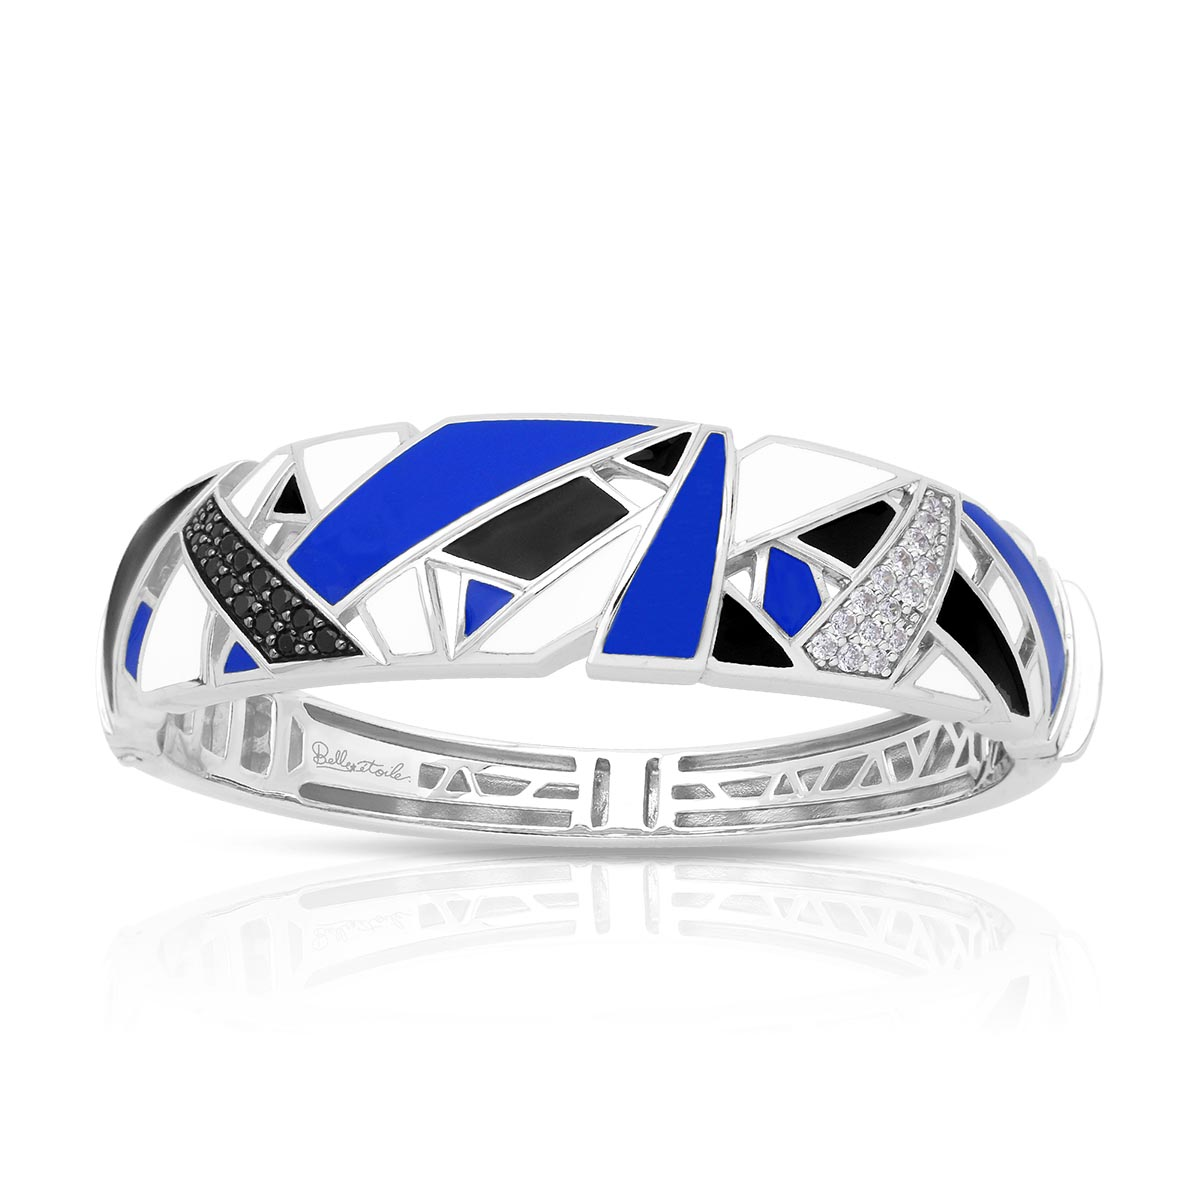 Belle Etoile Sterling Silver Spectrum Bangle in Blue, Black and White